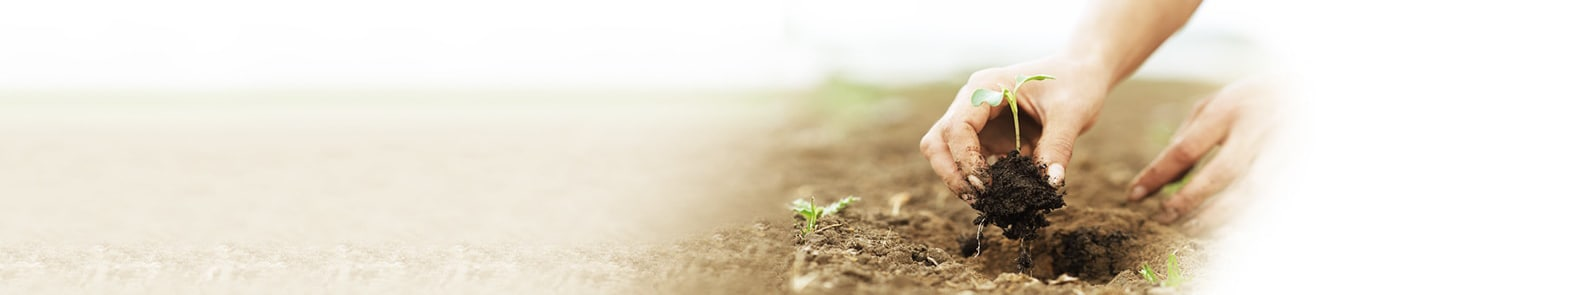 a hand planting sapling into soil